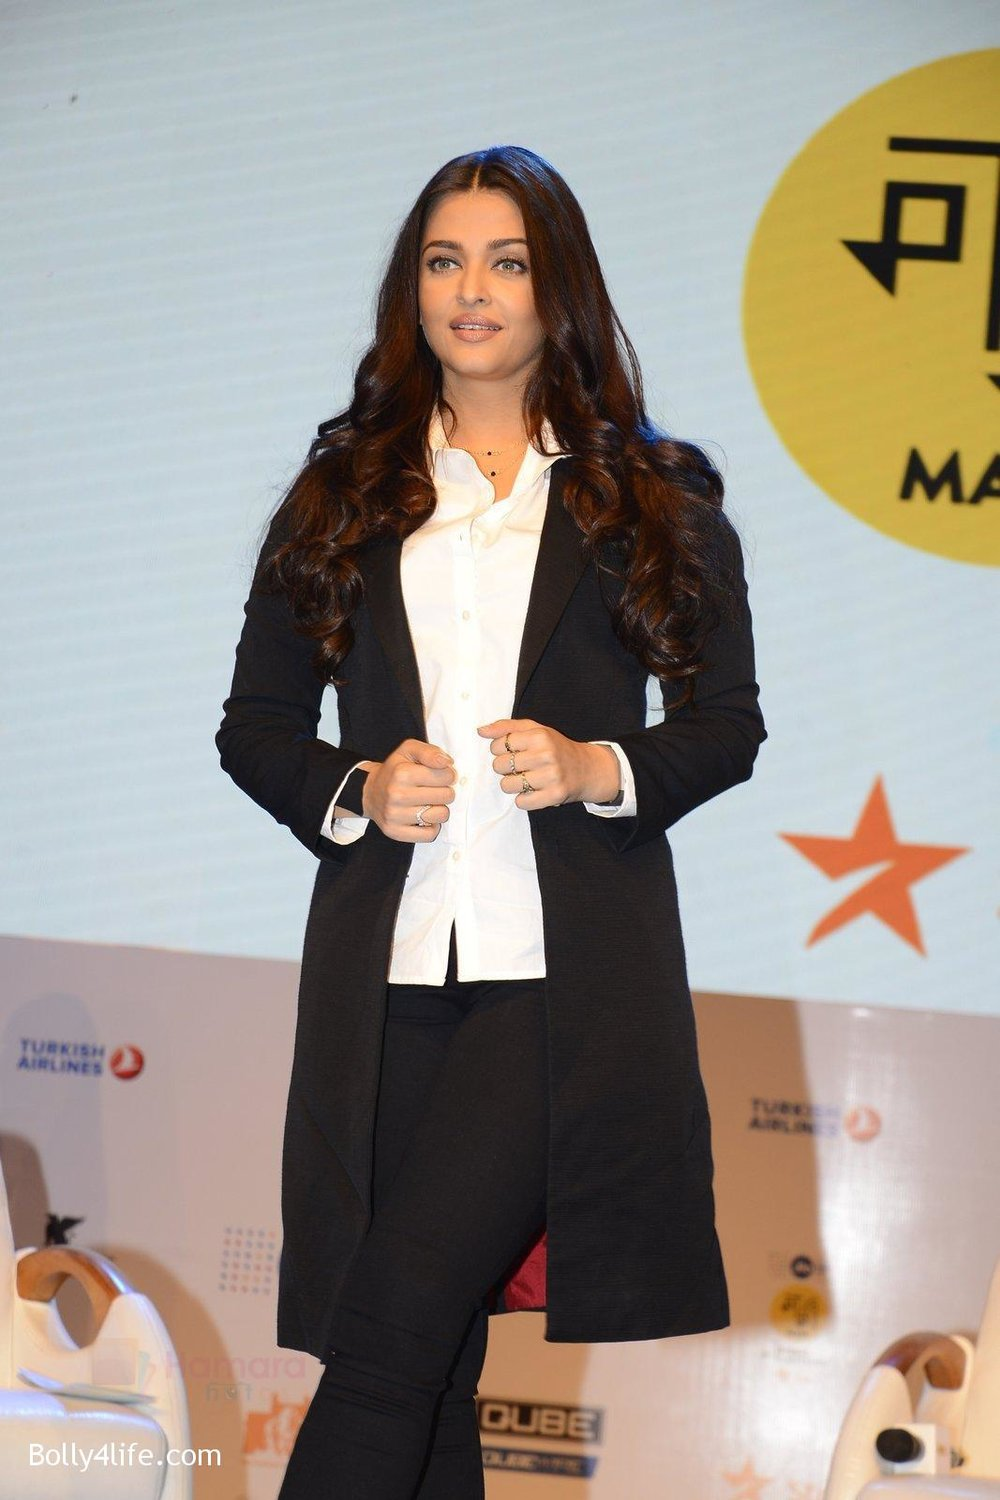 Aishwarya-Rai-talk-about-their-movie-Ae-Dil-Hai-Mushkil-during-the-Jio-MAMI-18th-Mumbai-Film-Festival-with-star-on-21st-Oct-2016-25.jpg